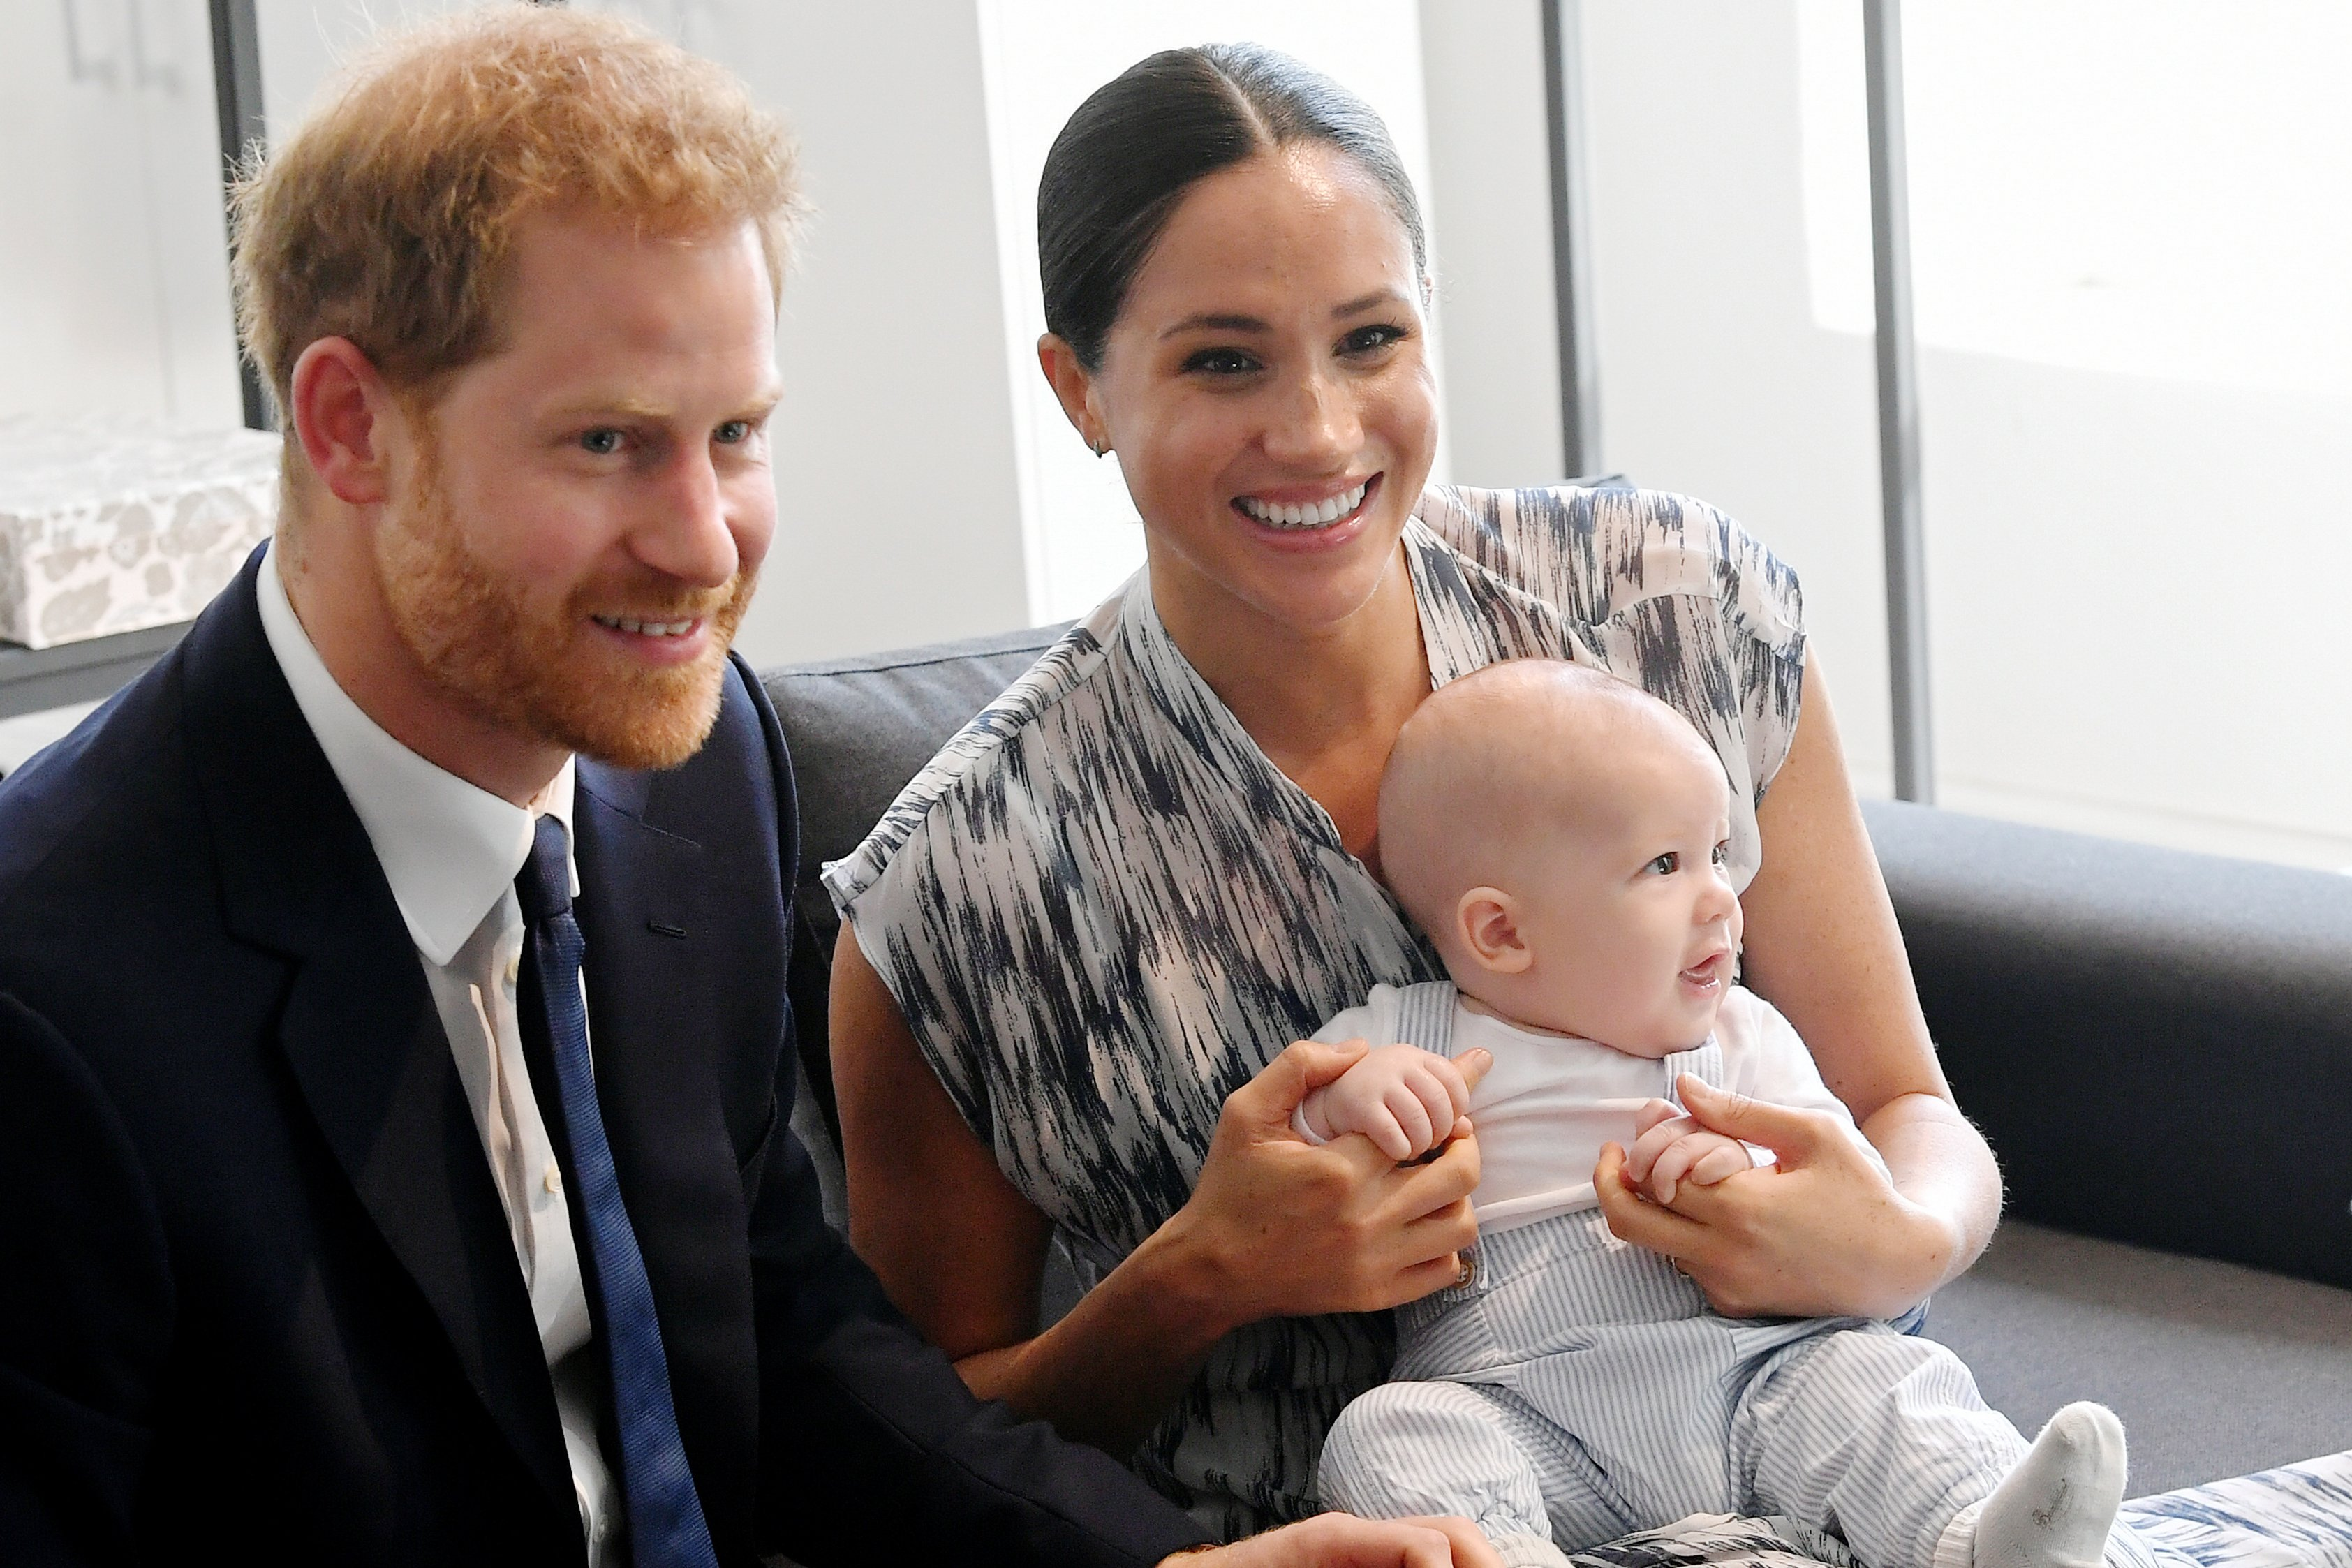 Prince Harry, Meghan Markle et leur fils Archie Mountbatten-Windsor lors de leur tournée royale en Afrique du Sud le 25 septembre 2019 | Photo: Getty Images